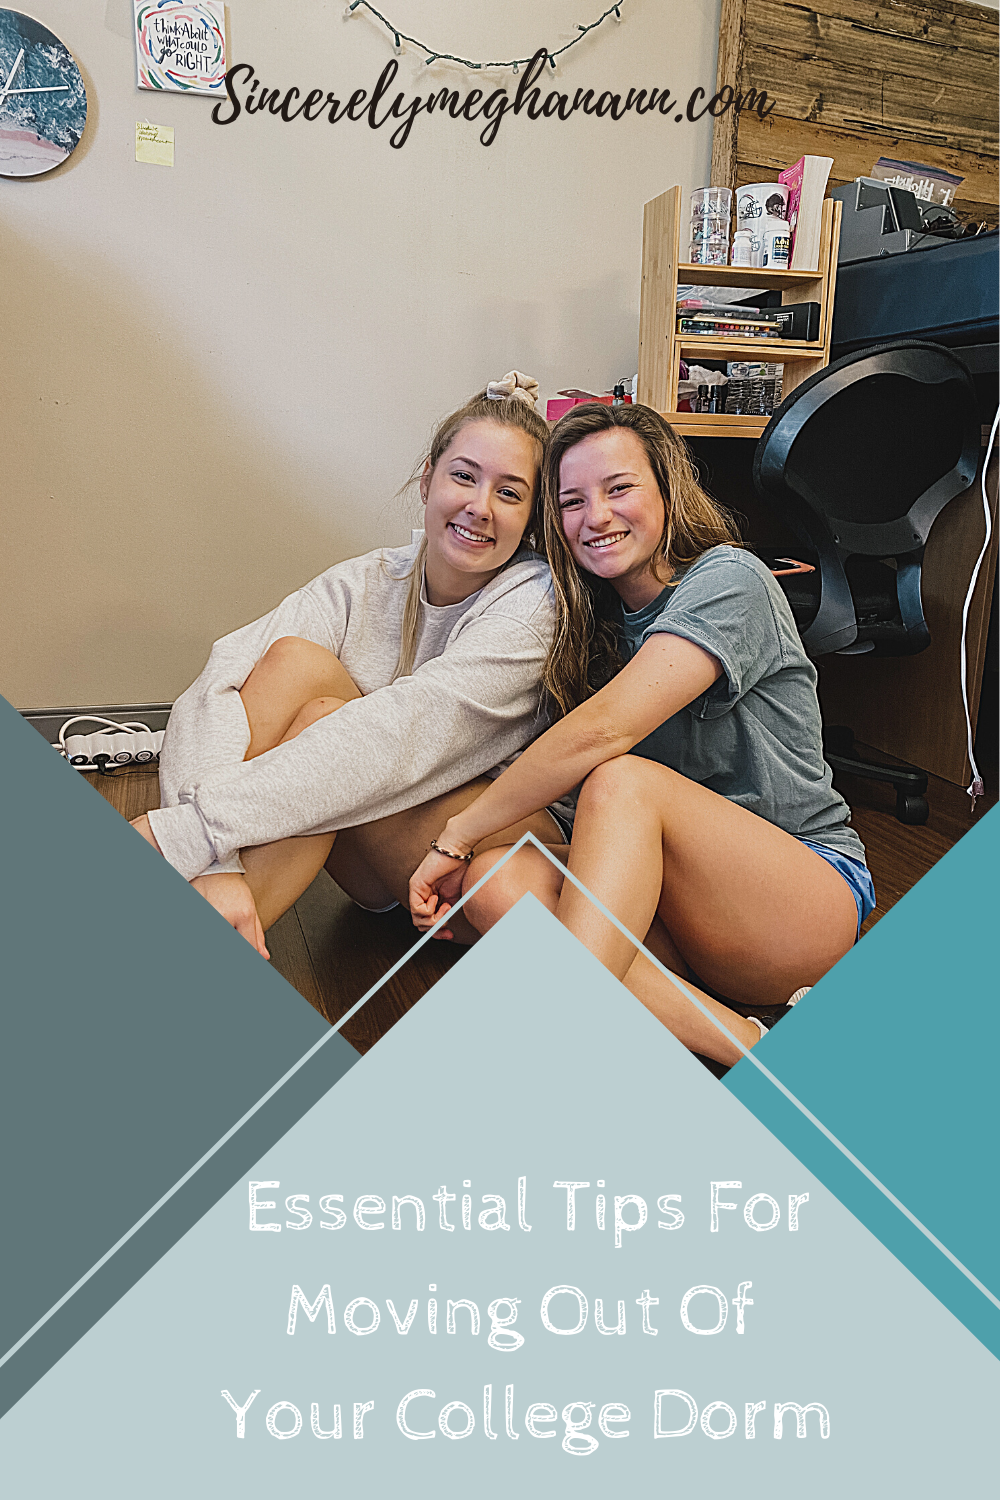 Tips For Moving Out Of Your Dorm » Sincerely, Meghan Ann This post is for all of the Freshman in college who are moving out of their dorms for the first time! The process is overwhelming! You will need these tips to help you organize your process and make sure you do things efficiently. #movingout #moveoutday #collegemoveout #dormmoveout #collegedorm #moveoutadvice #essentialtips #moveouthacks #collegeblogger #collegeadvice